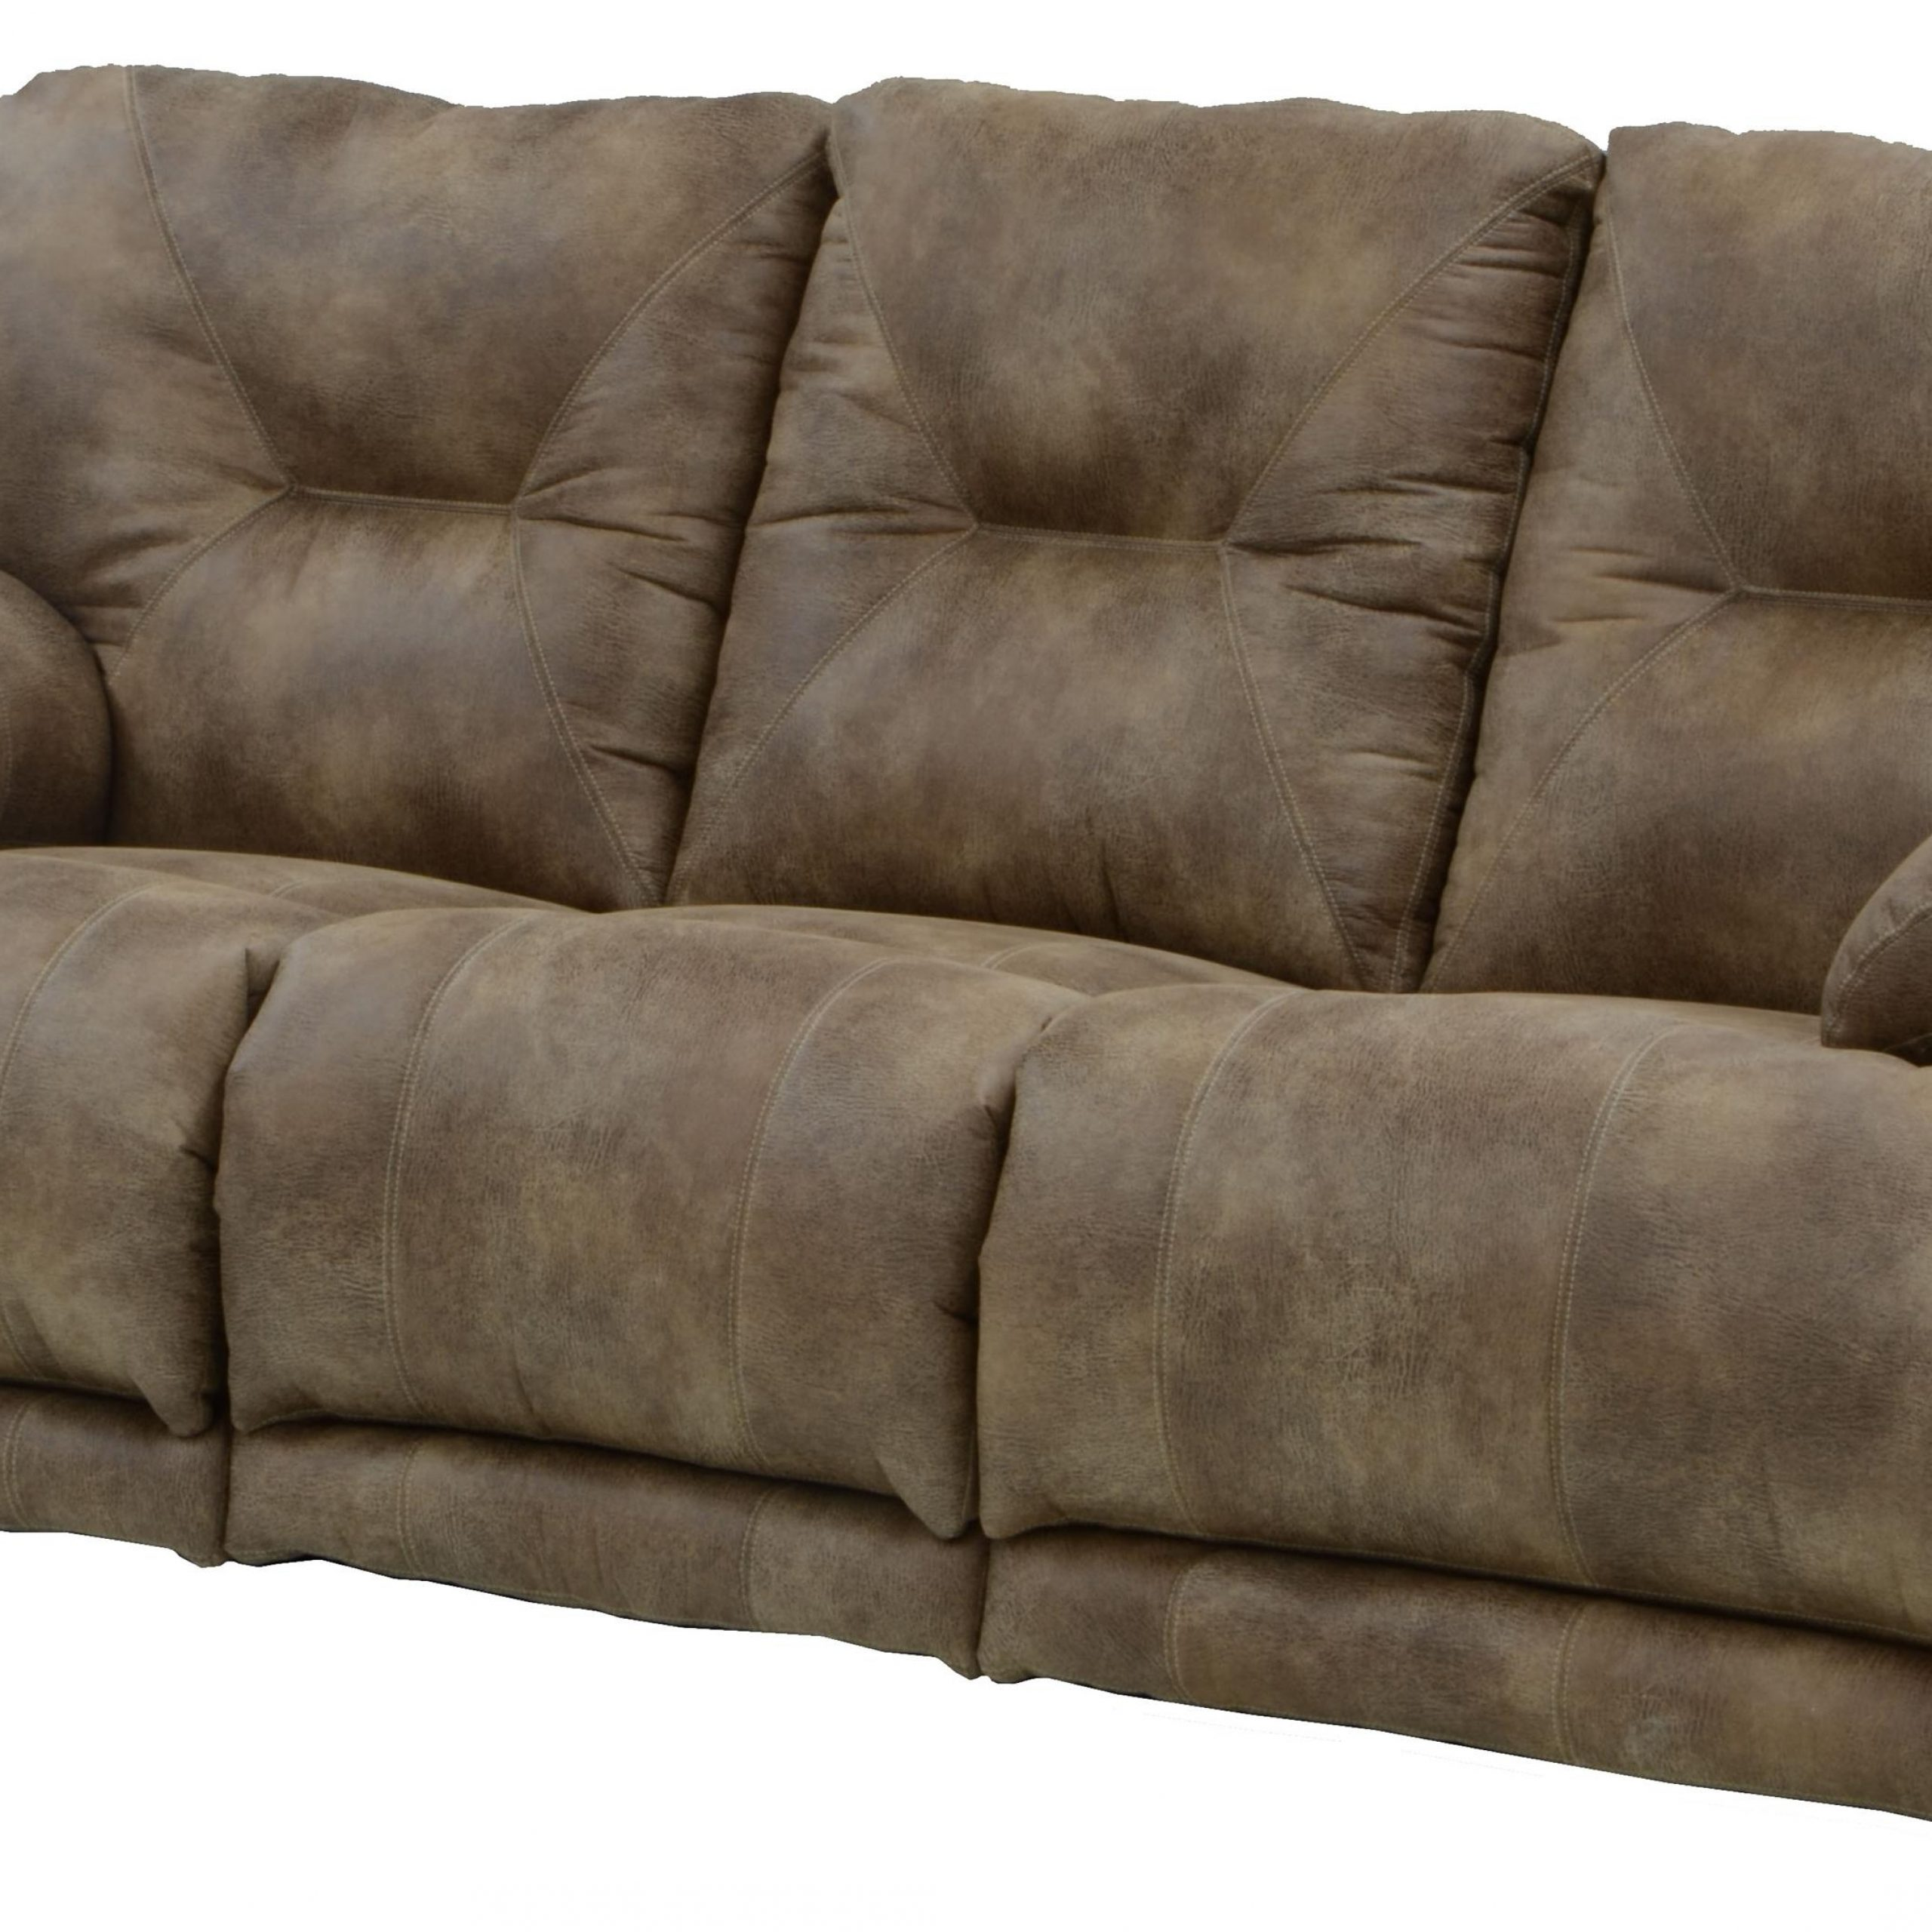 """Widely Used Power Reclining Sofas With Power 3 Seat """"lay Flat"""" Reclining Sofa With Fold Down (View 17 of 20)"""